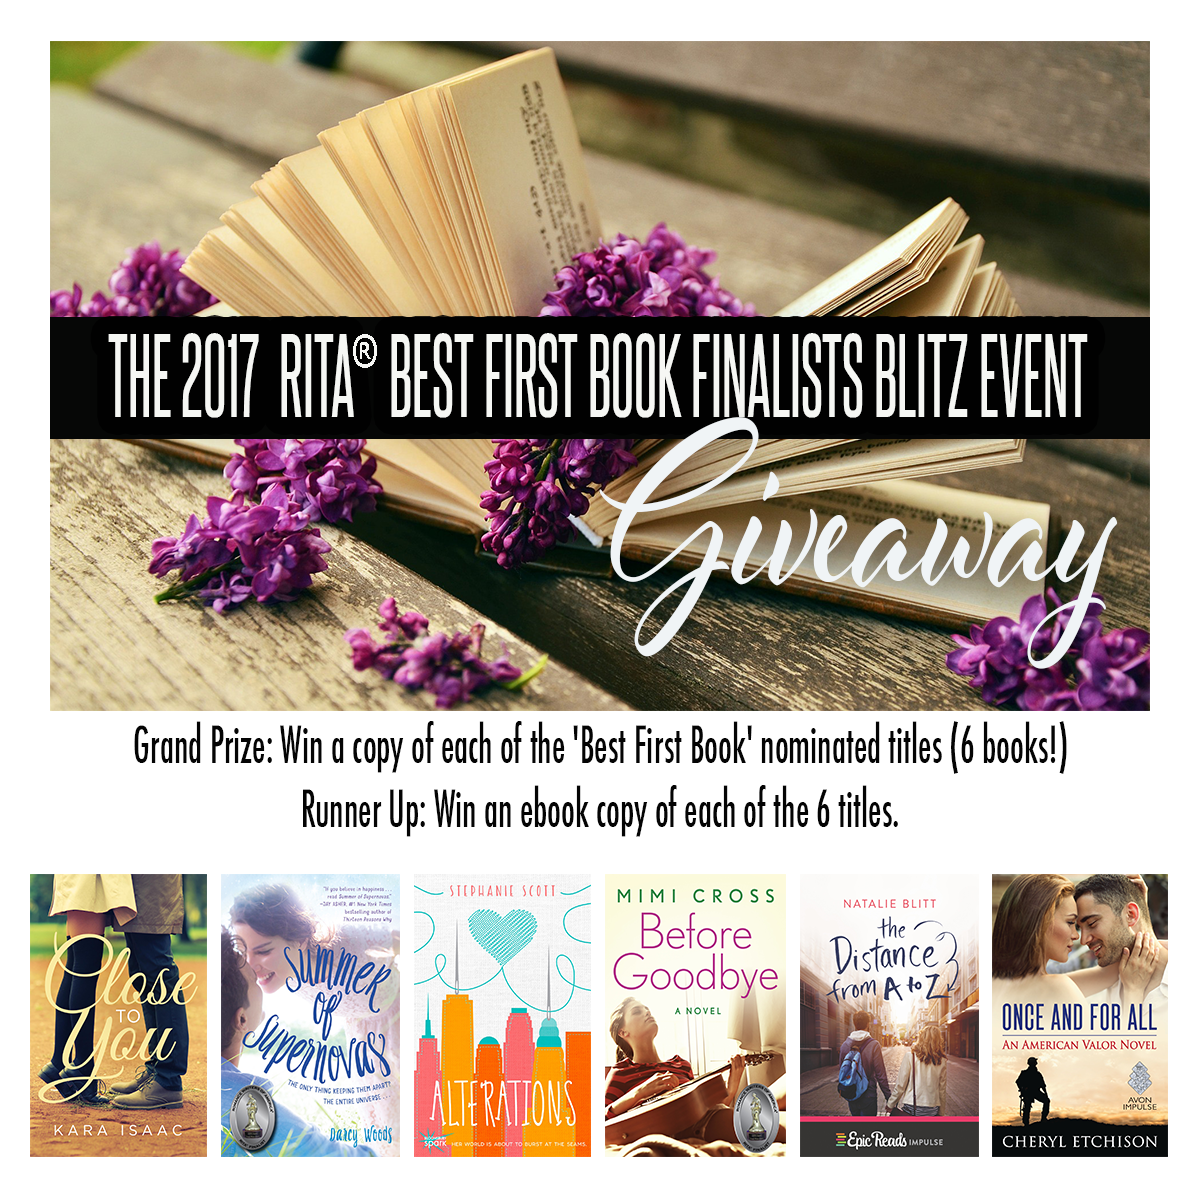 Win a copy of each of the 'Best First Book' nominated titles!